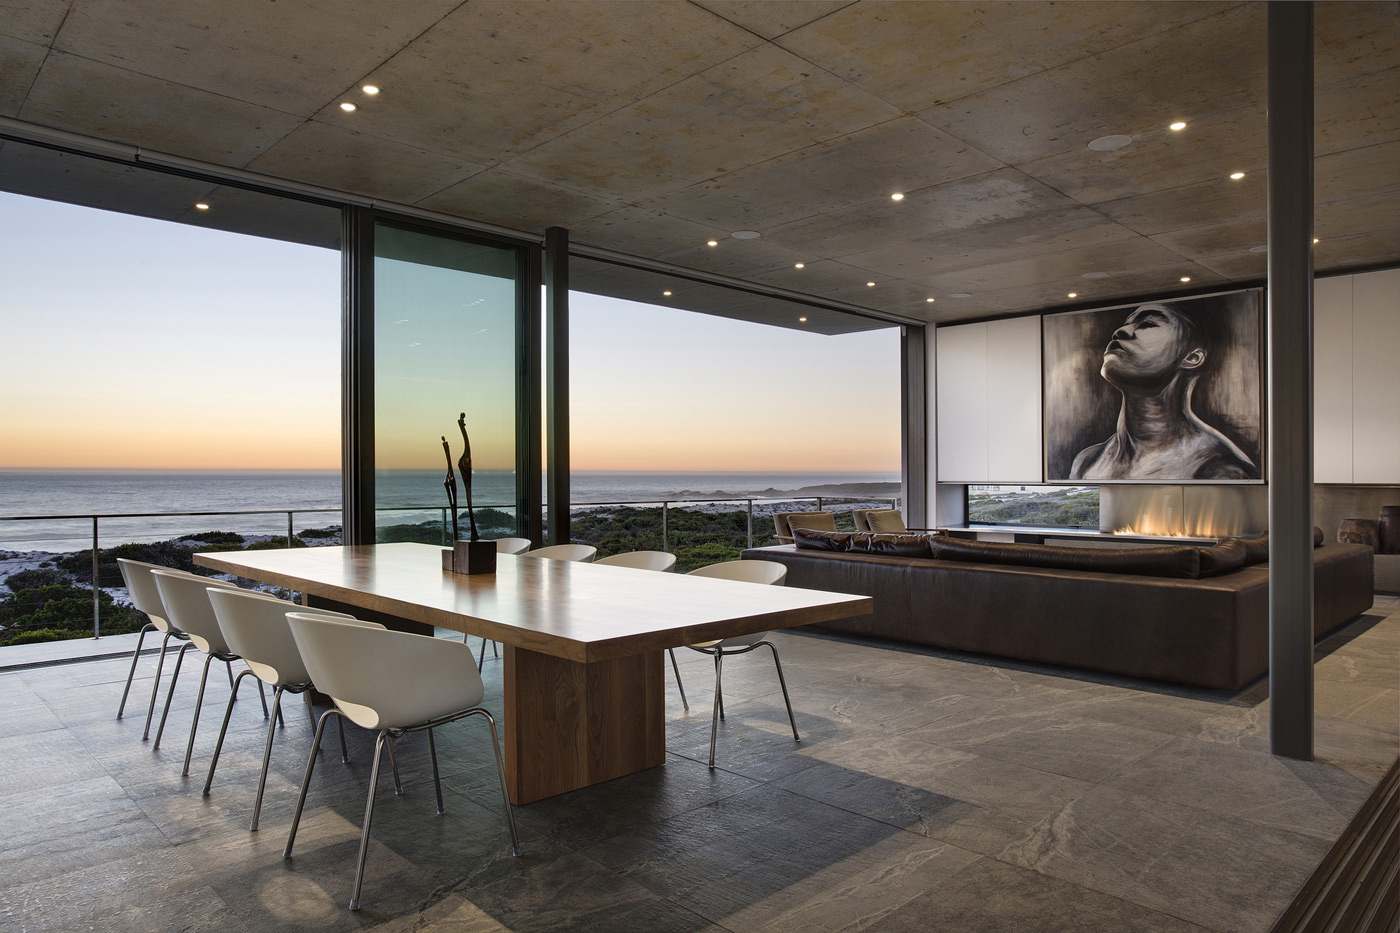 Dining Table, Fireplace, Art, Ocean Views, Holiday Home in Yzerfontein, South Africa